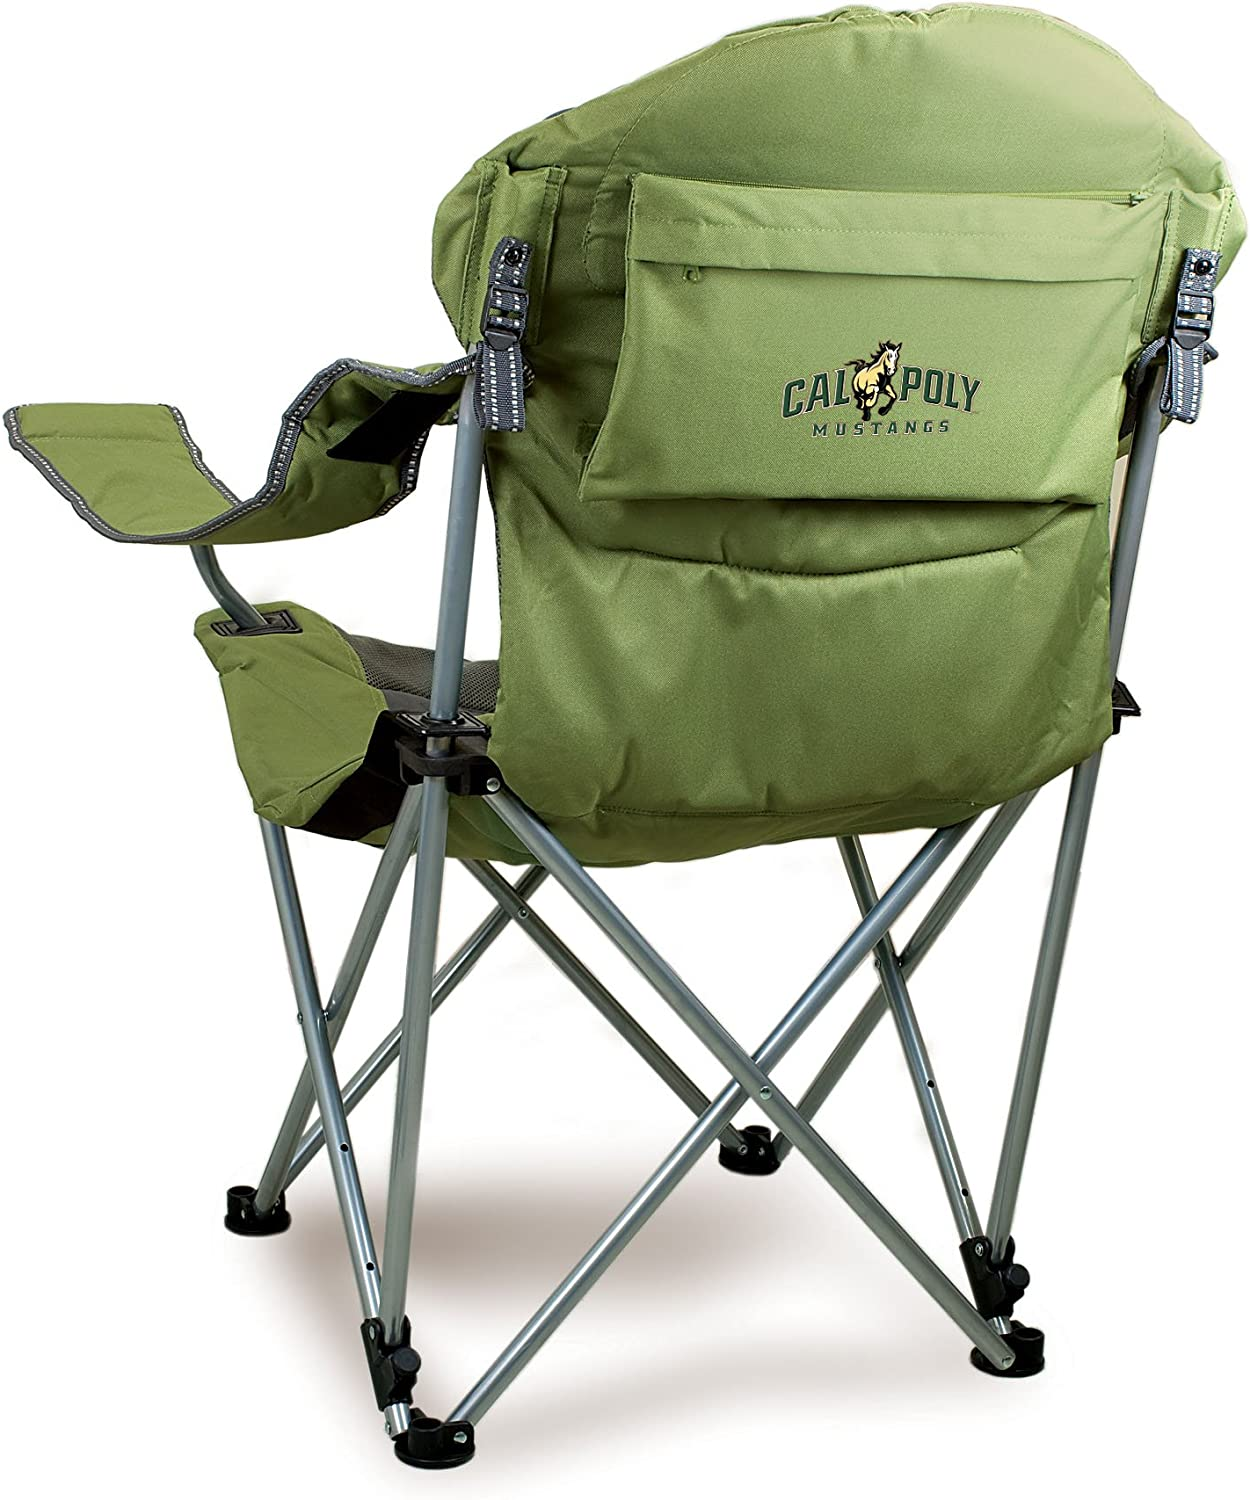 NCAA Cal Poly Digital Print Reclining Camp Chair, Sage, One Size